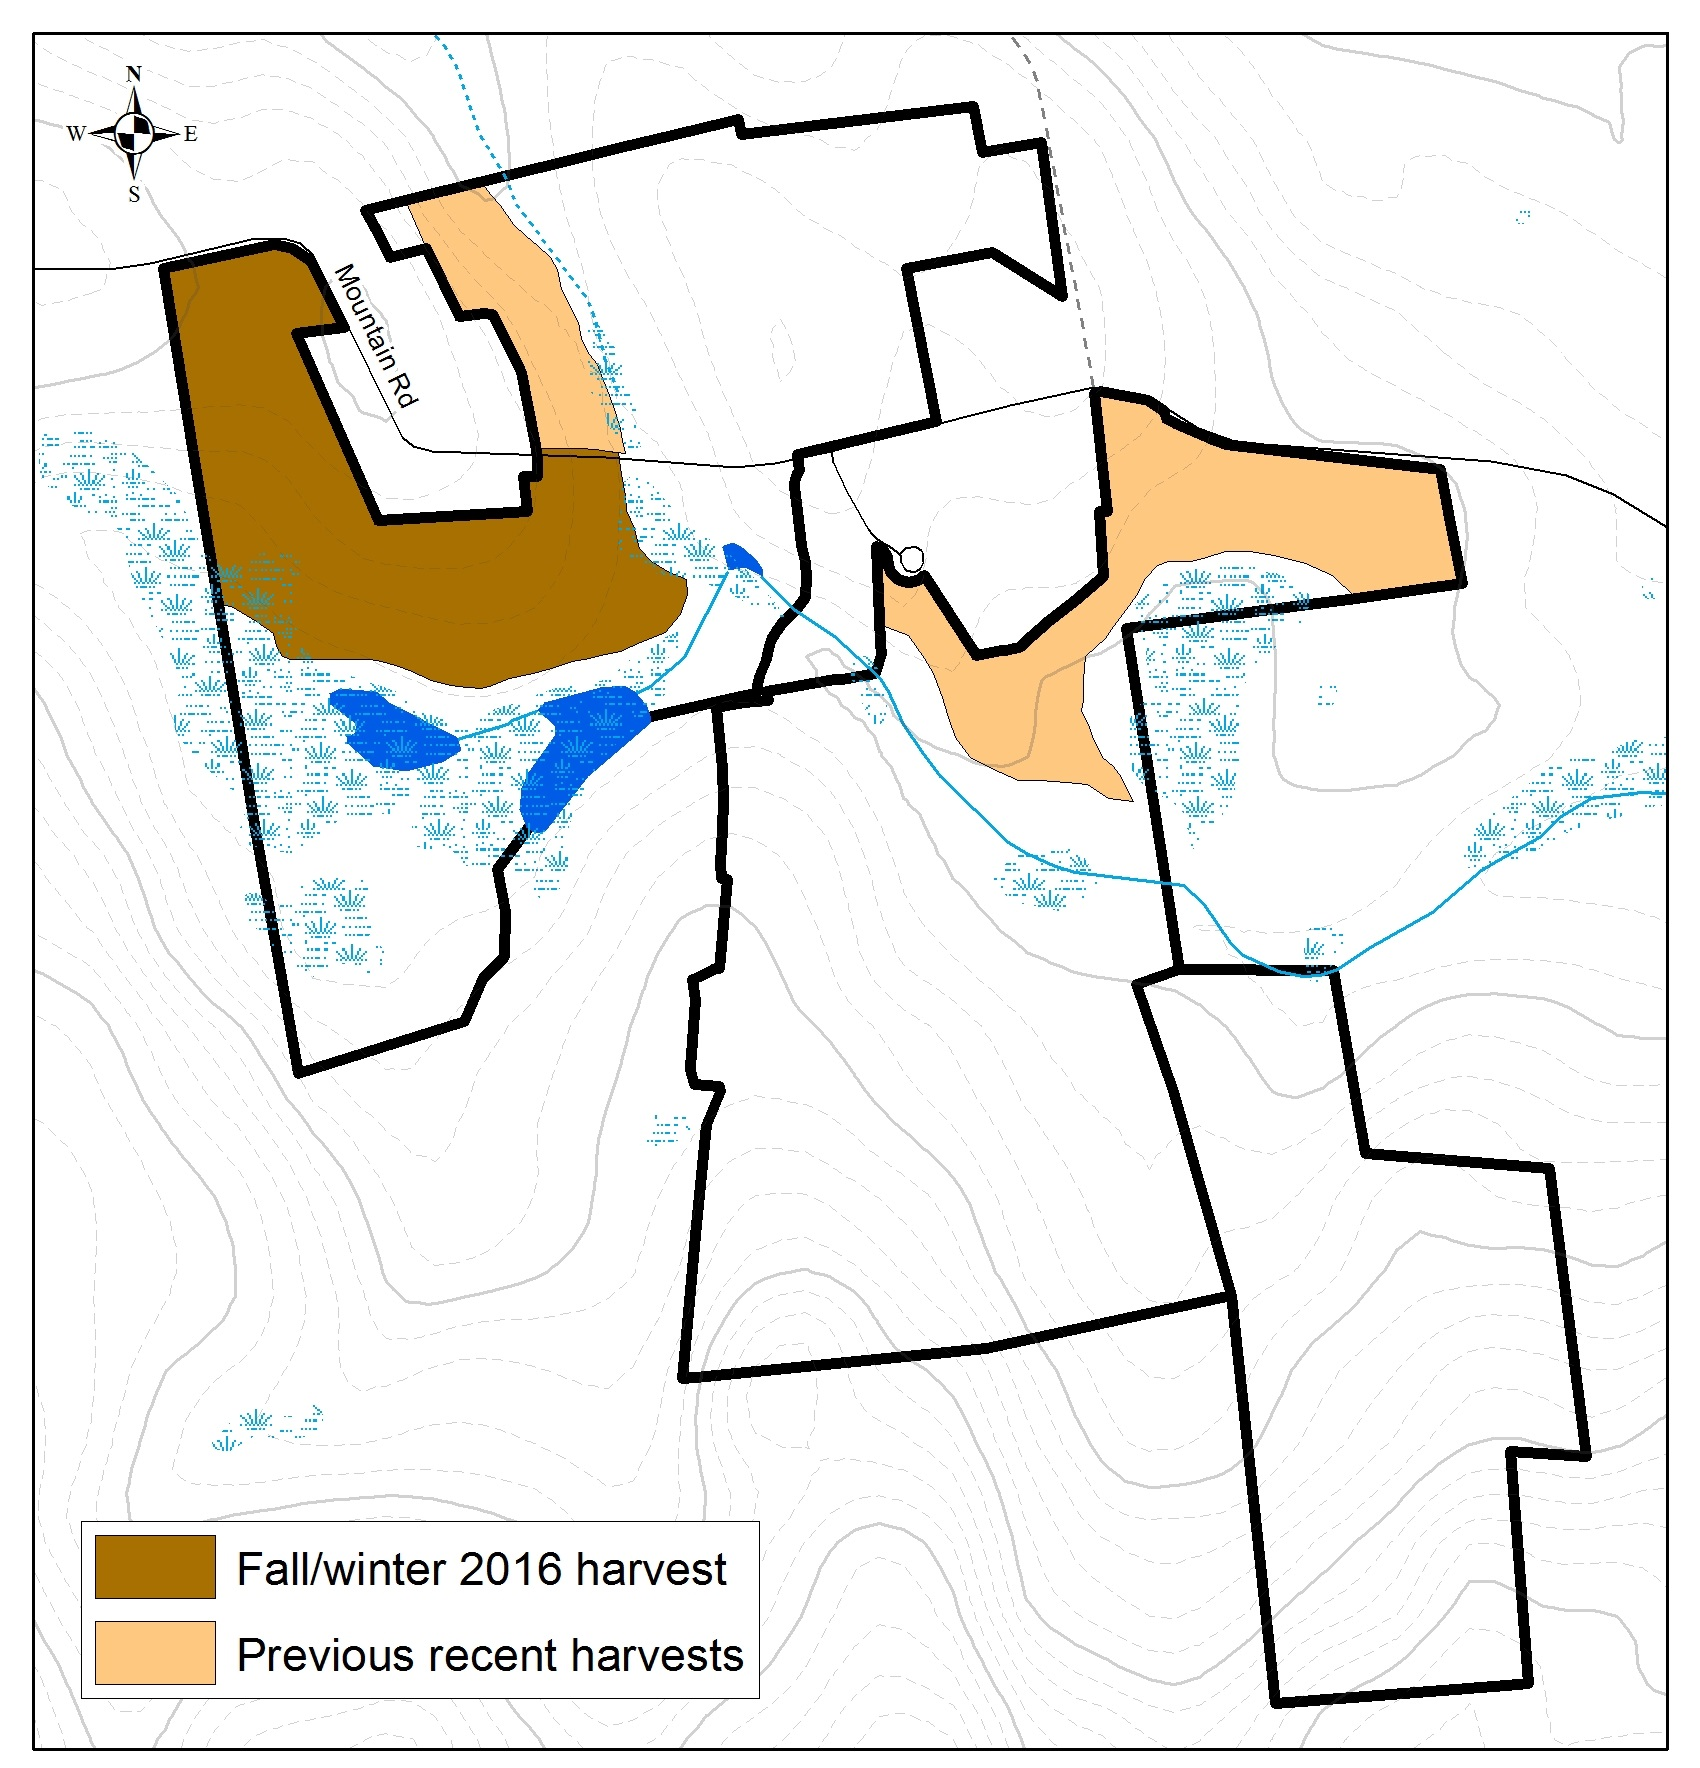 Whittemore Reservation timber harvest map fall 2016